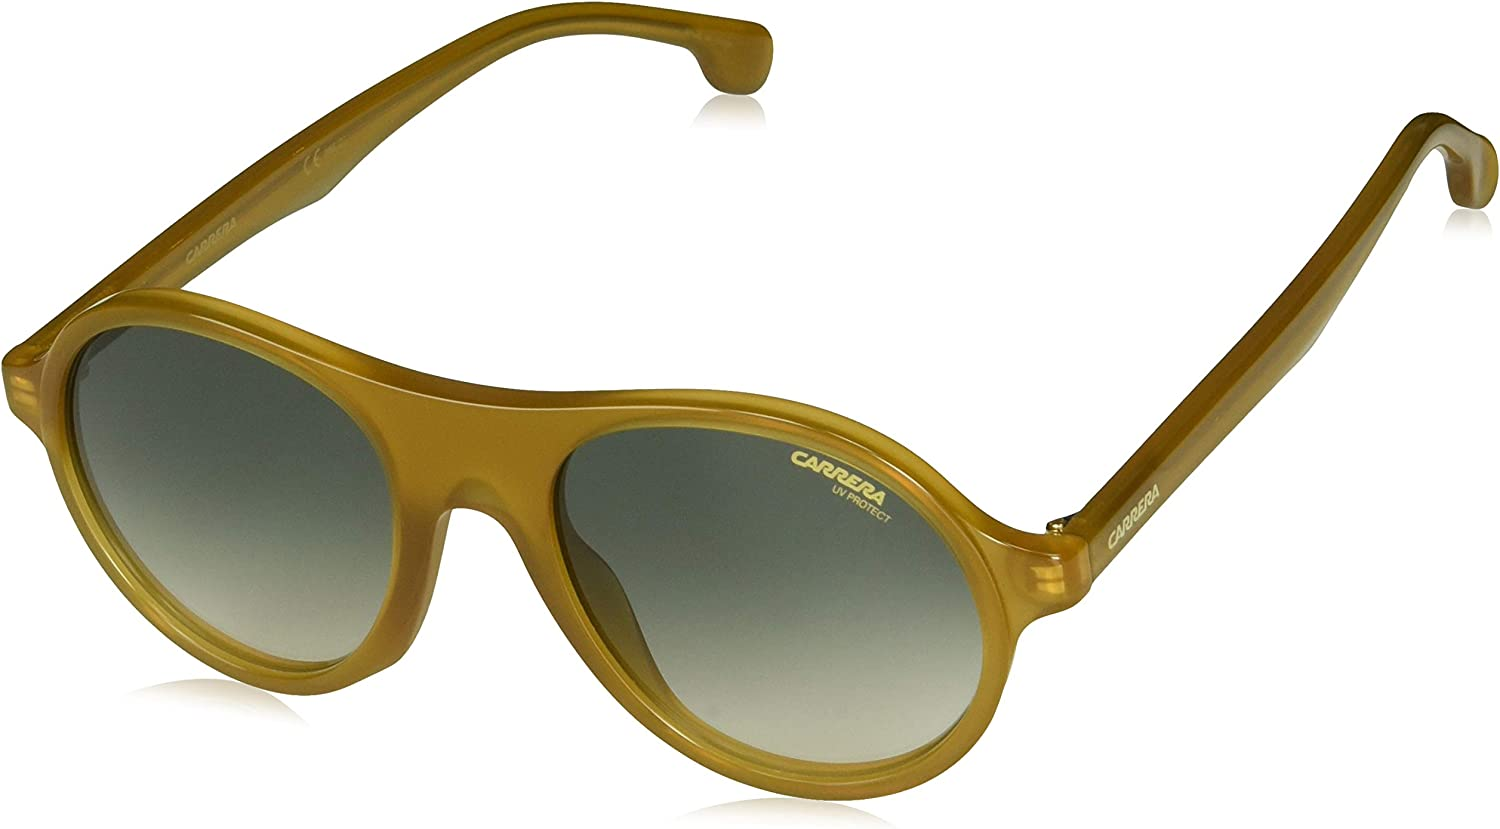 Carrera 142 s Round Sunglasses, Yellow, 50 mm